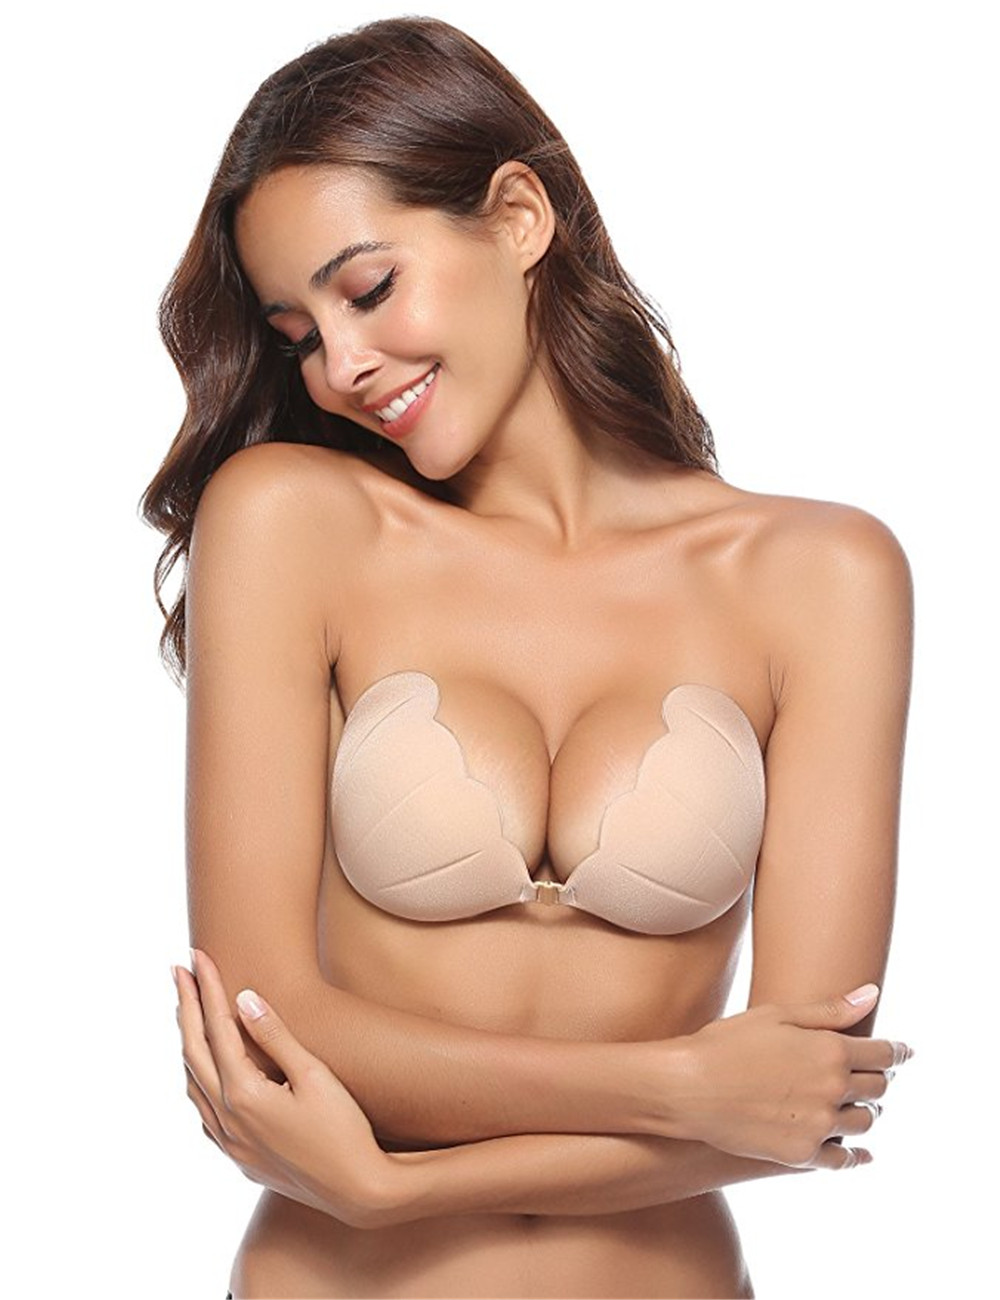 CAREOR Women Strapless Bra Sticky Adhesive Invisible Push up Bra for Backless or Strapless Dress